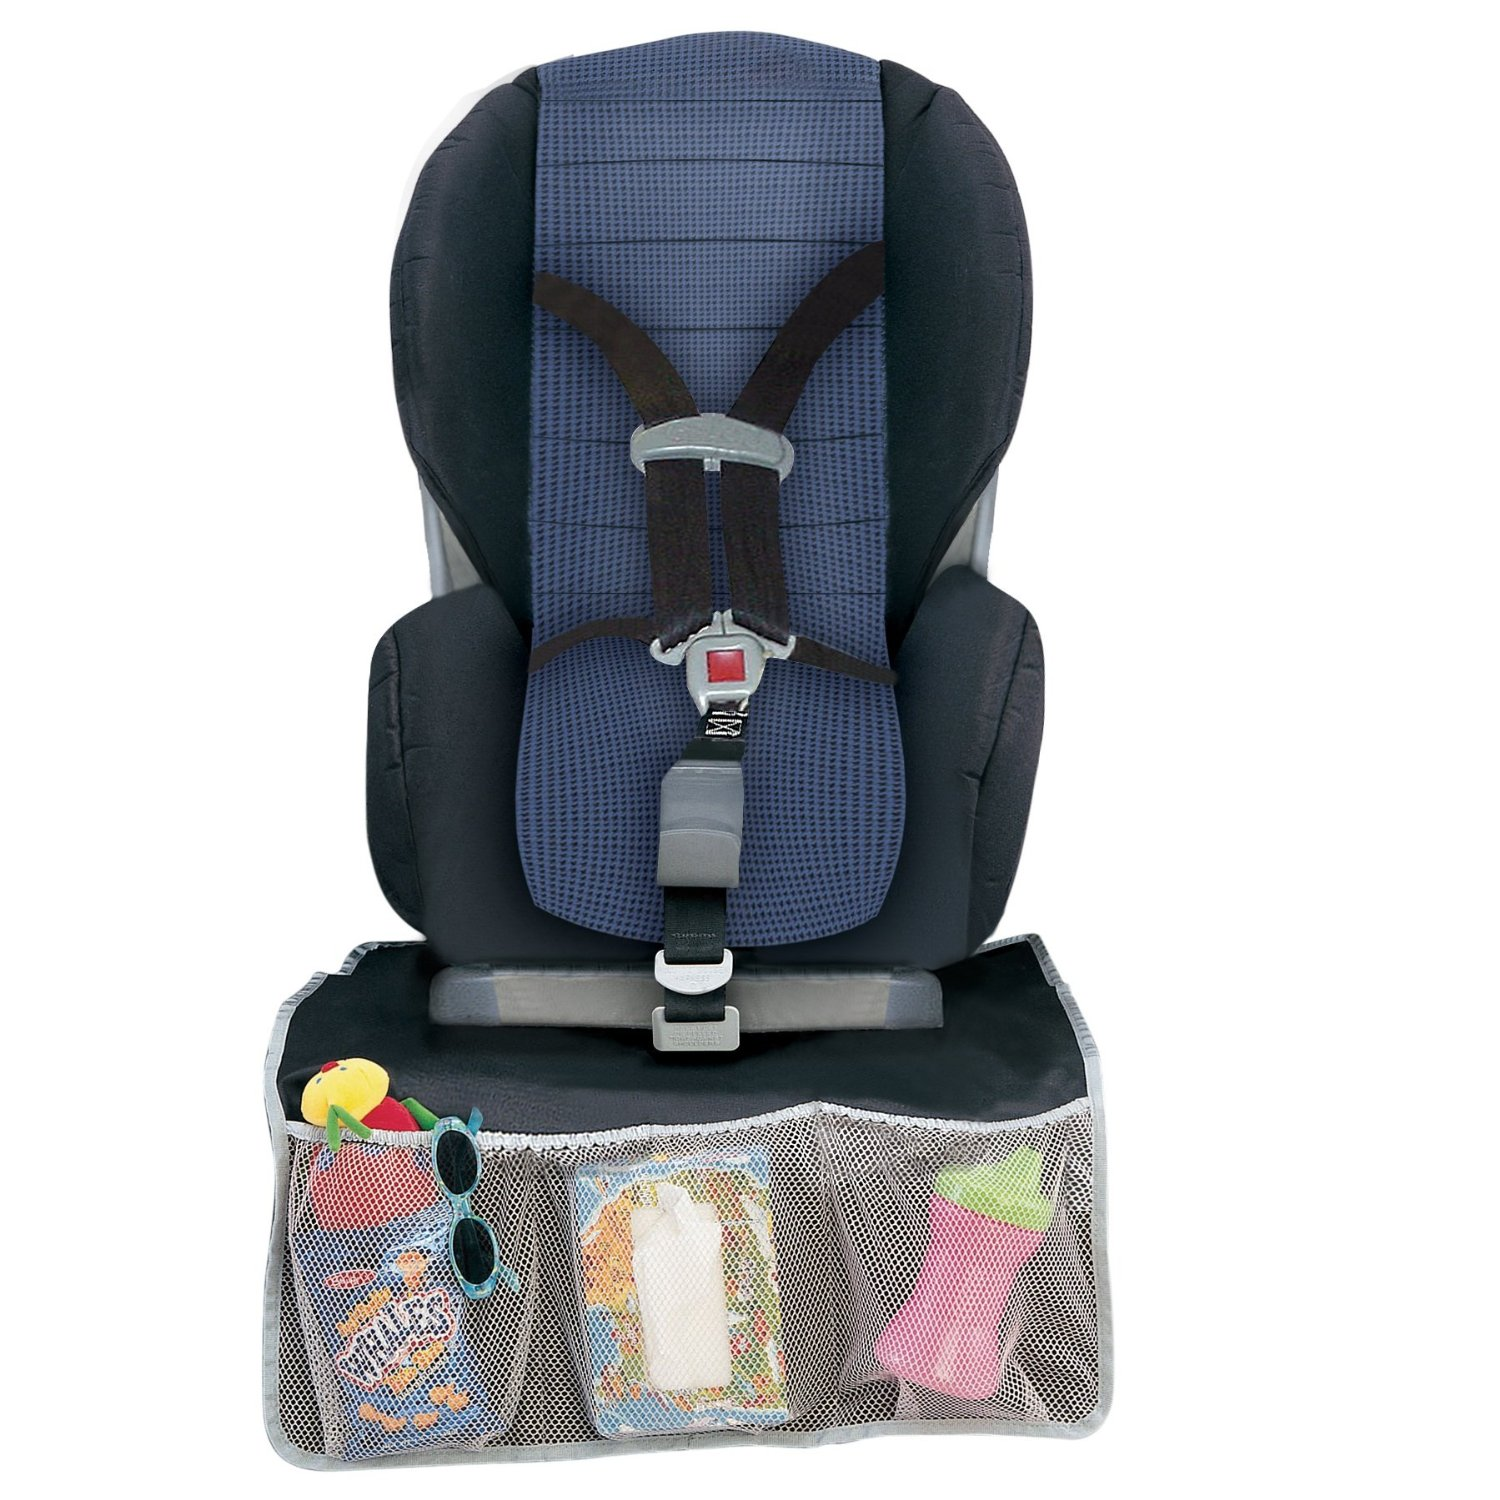 Buy SafeFit Car Seat Travel Tote (Discontinued by Manufacturer) in